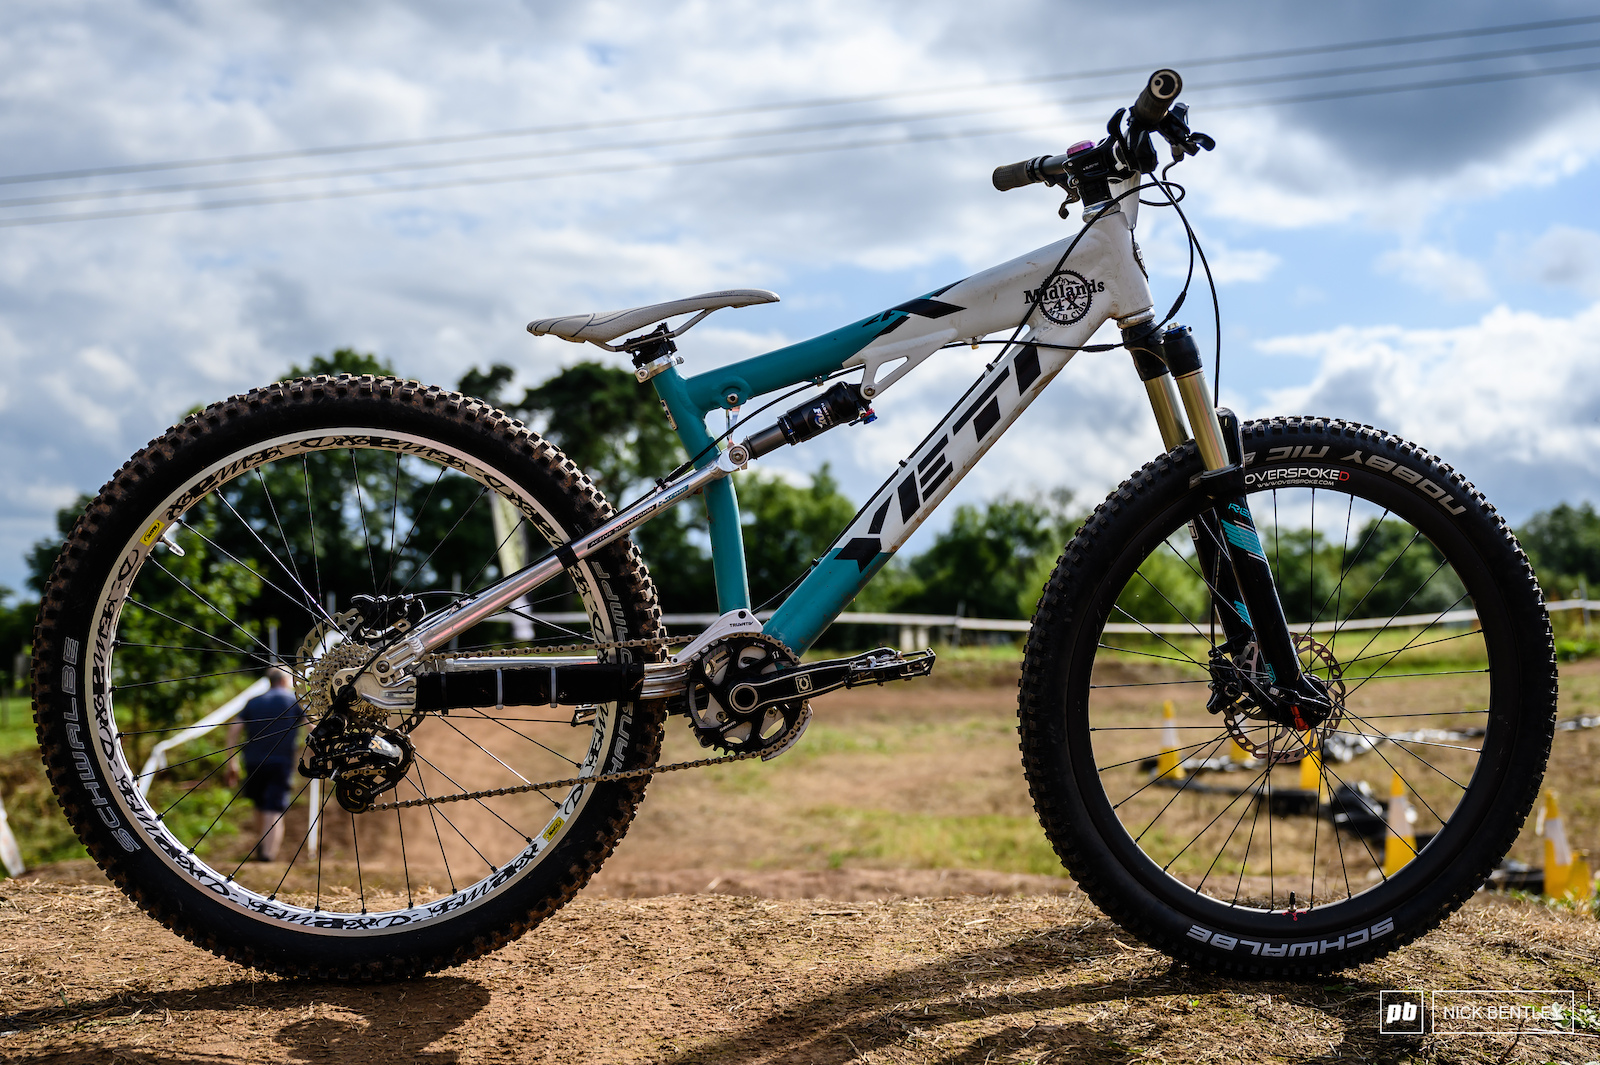 Hannah Escott s Yeti 4X Both wheels are 26 inch just a weird perspective in the photograph